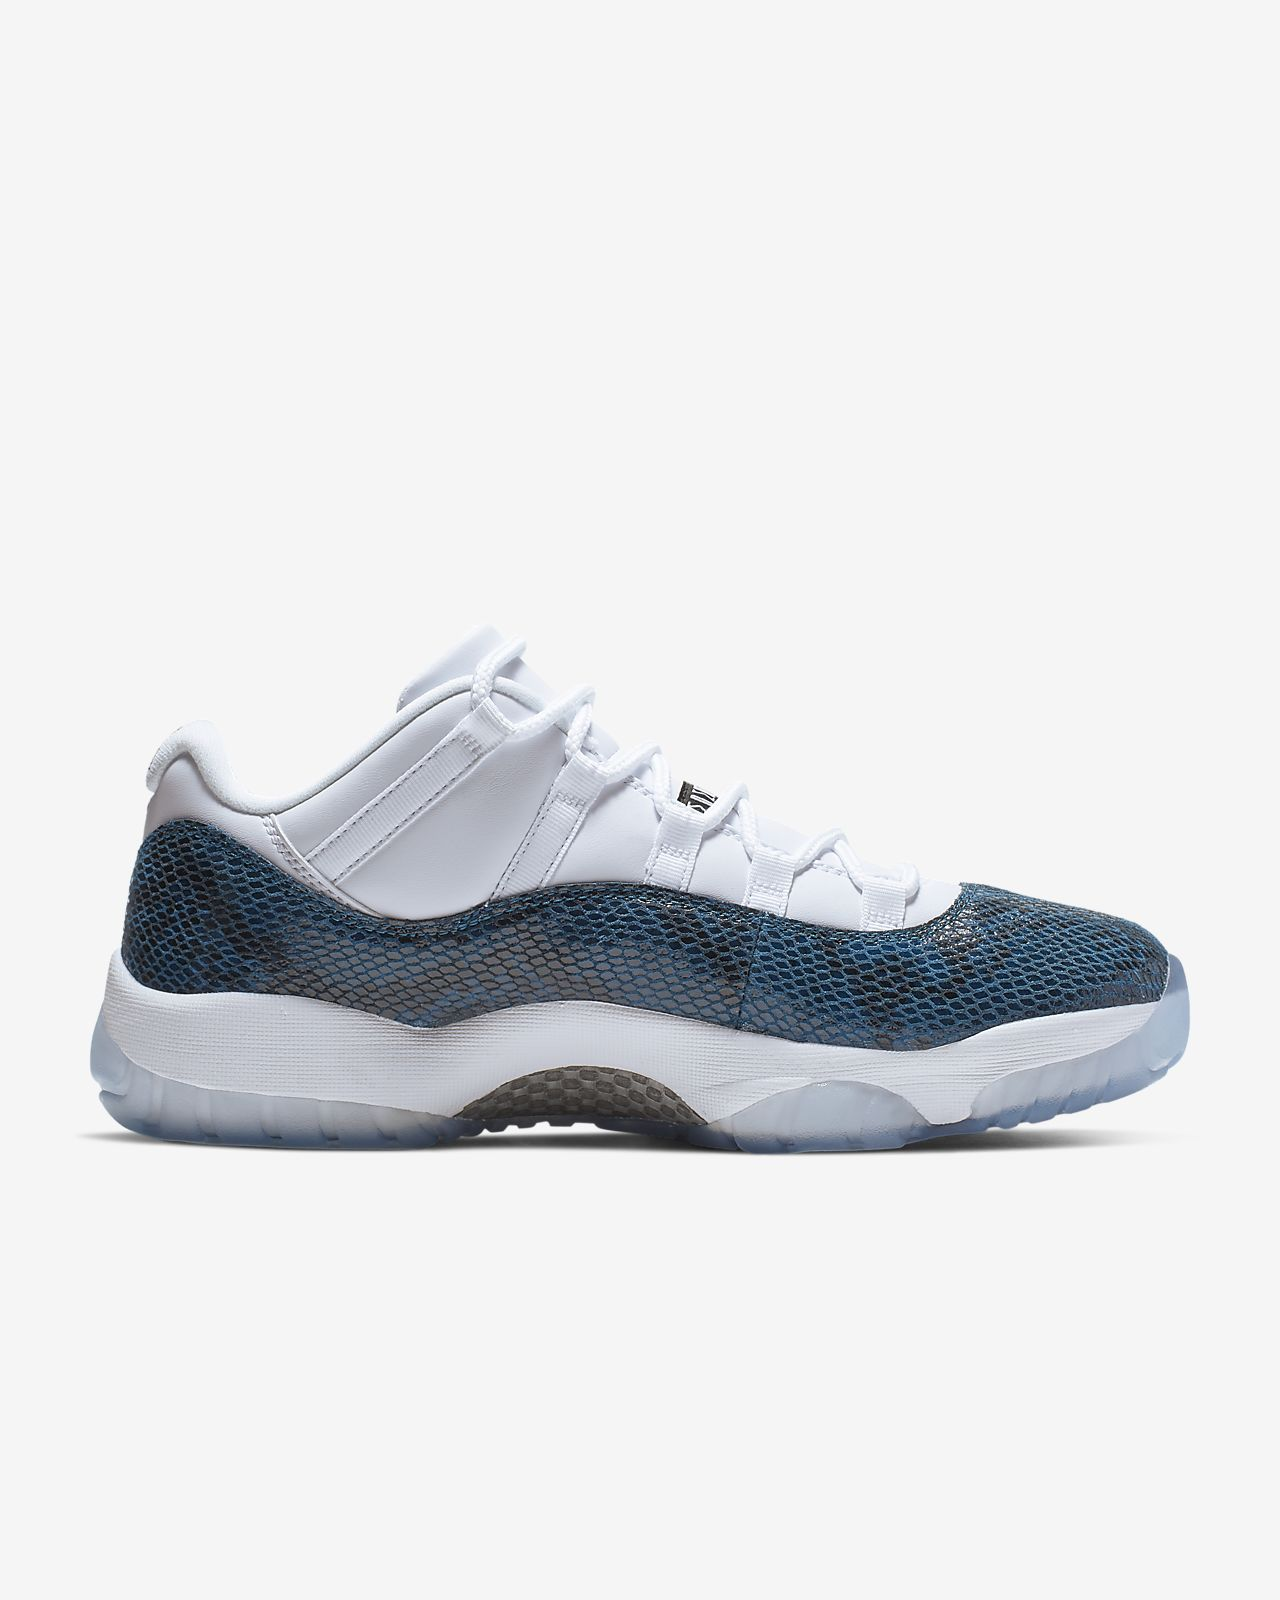 fe1e2258598 Air Jordan 11 Retro Low LE Men's Shoe. Nike.com